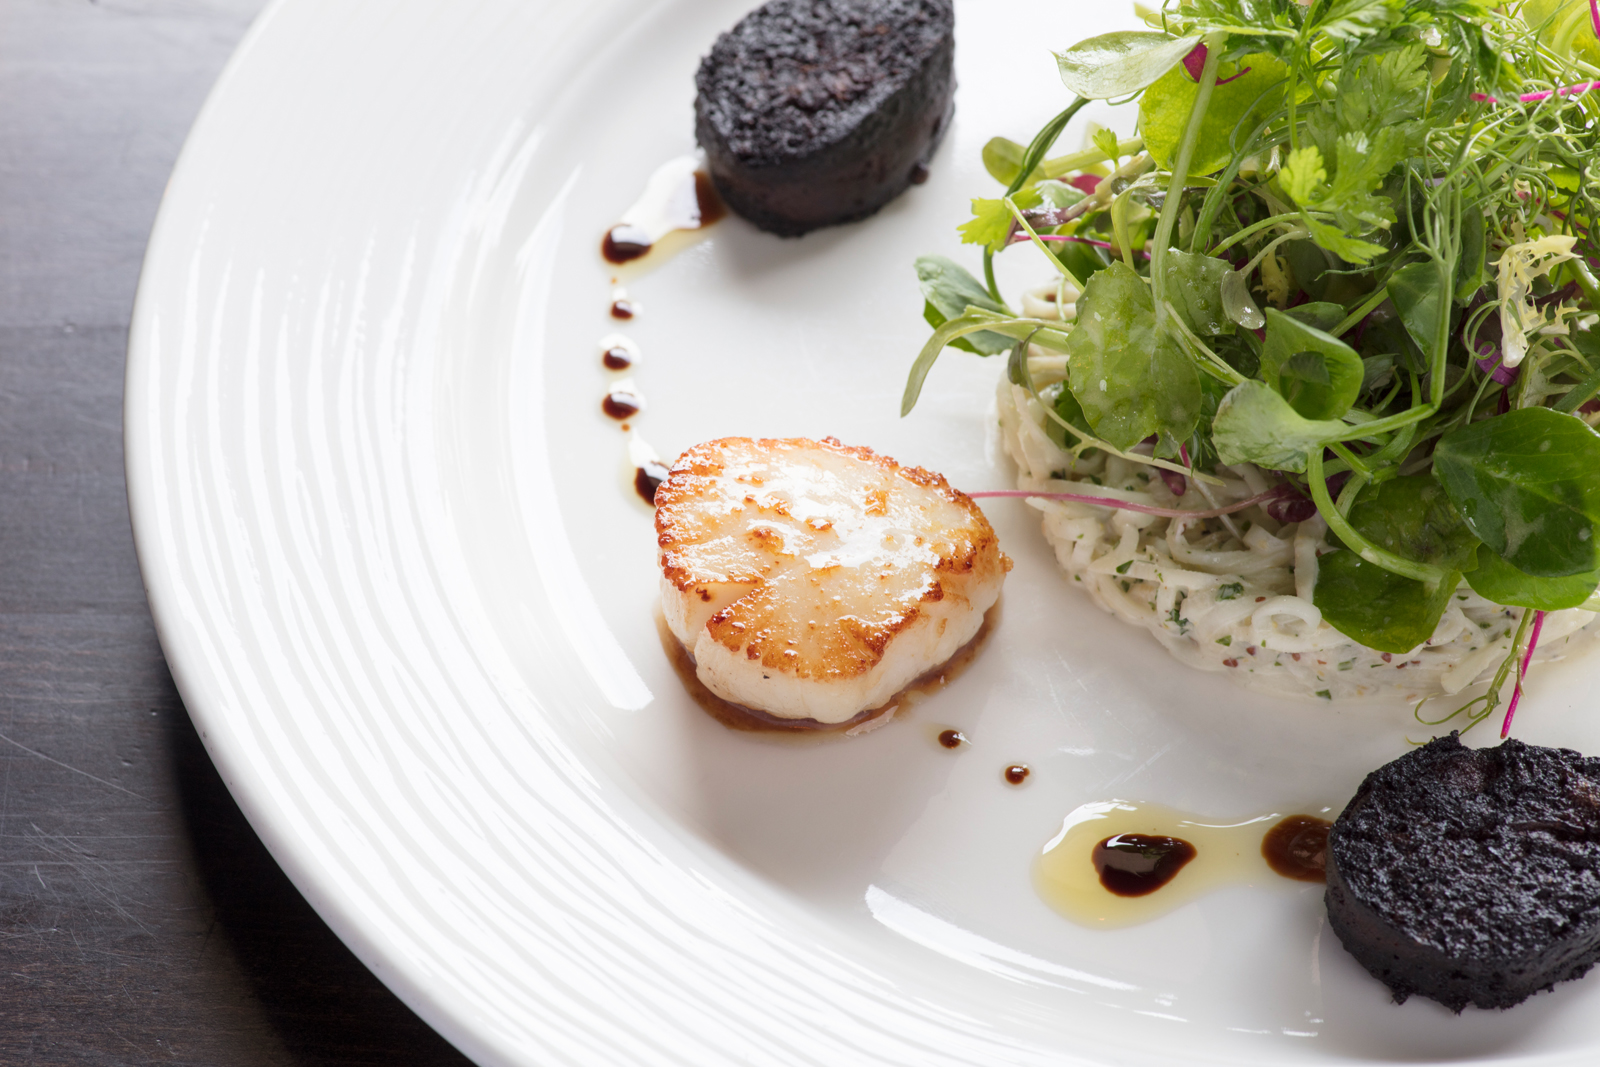 Hand Dived Scottish Scallops with Thiol Black Pudding & Celeriac Remoulade